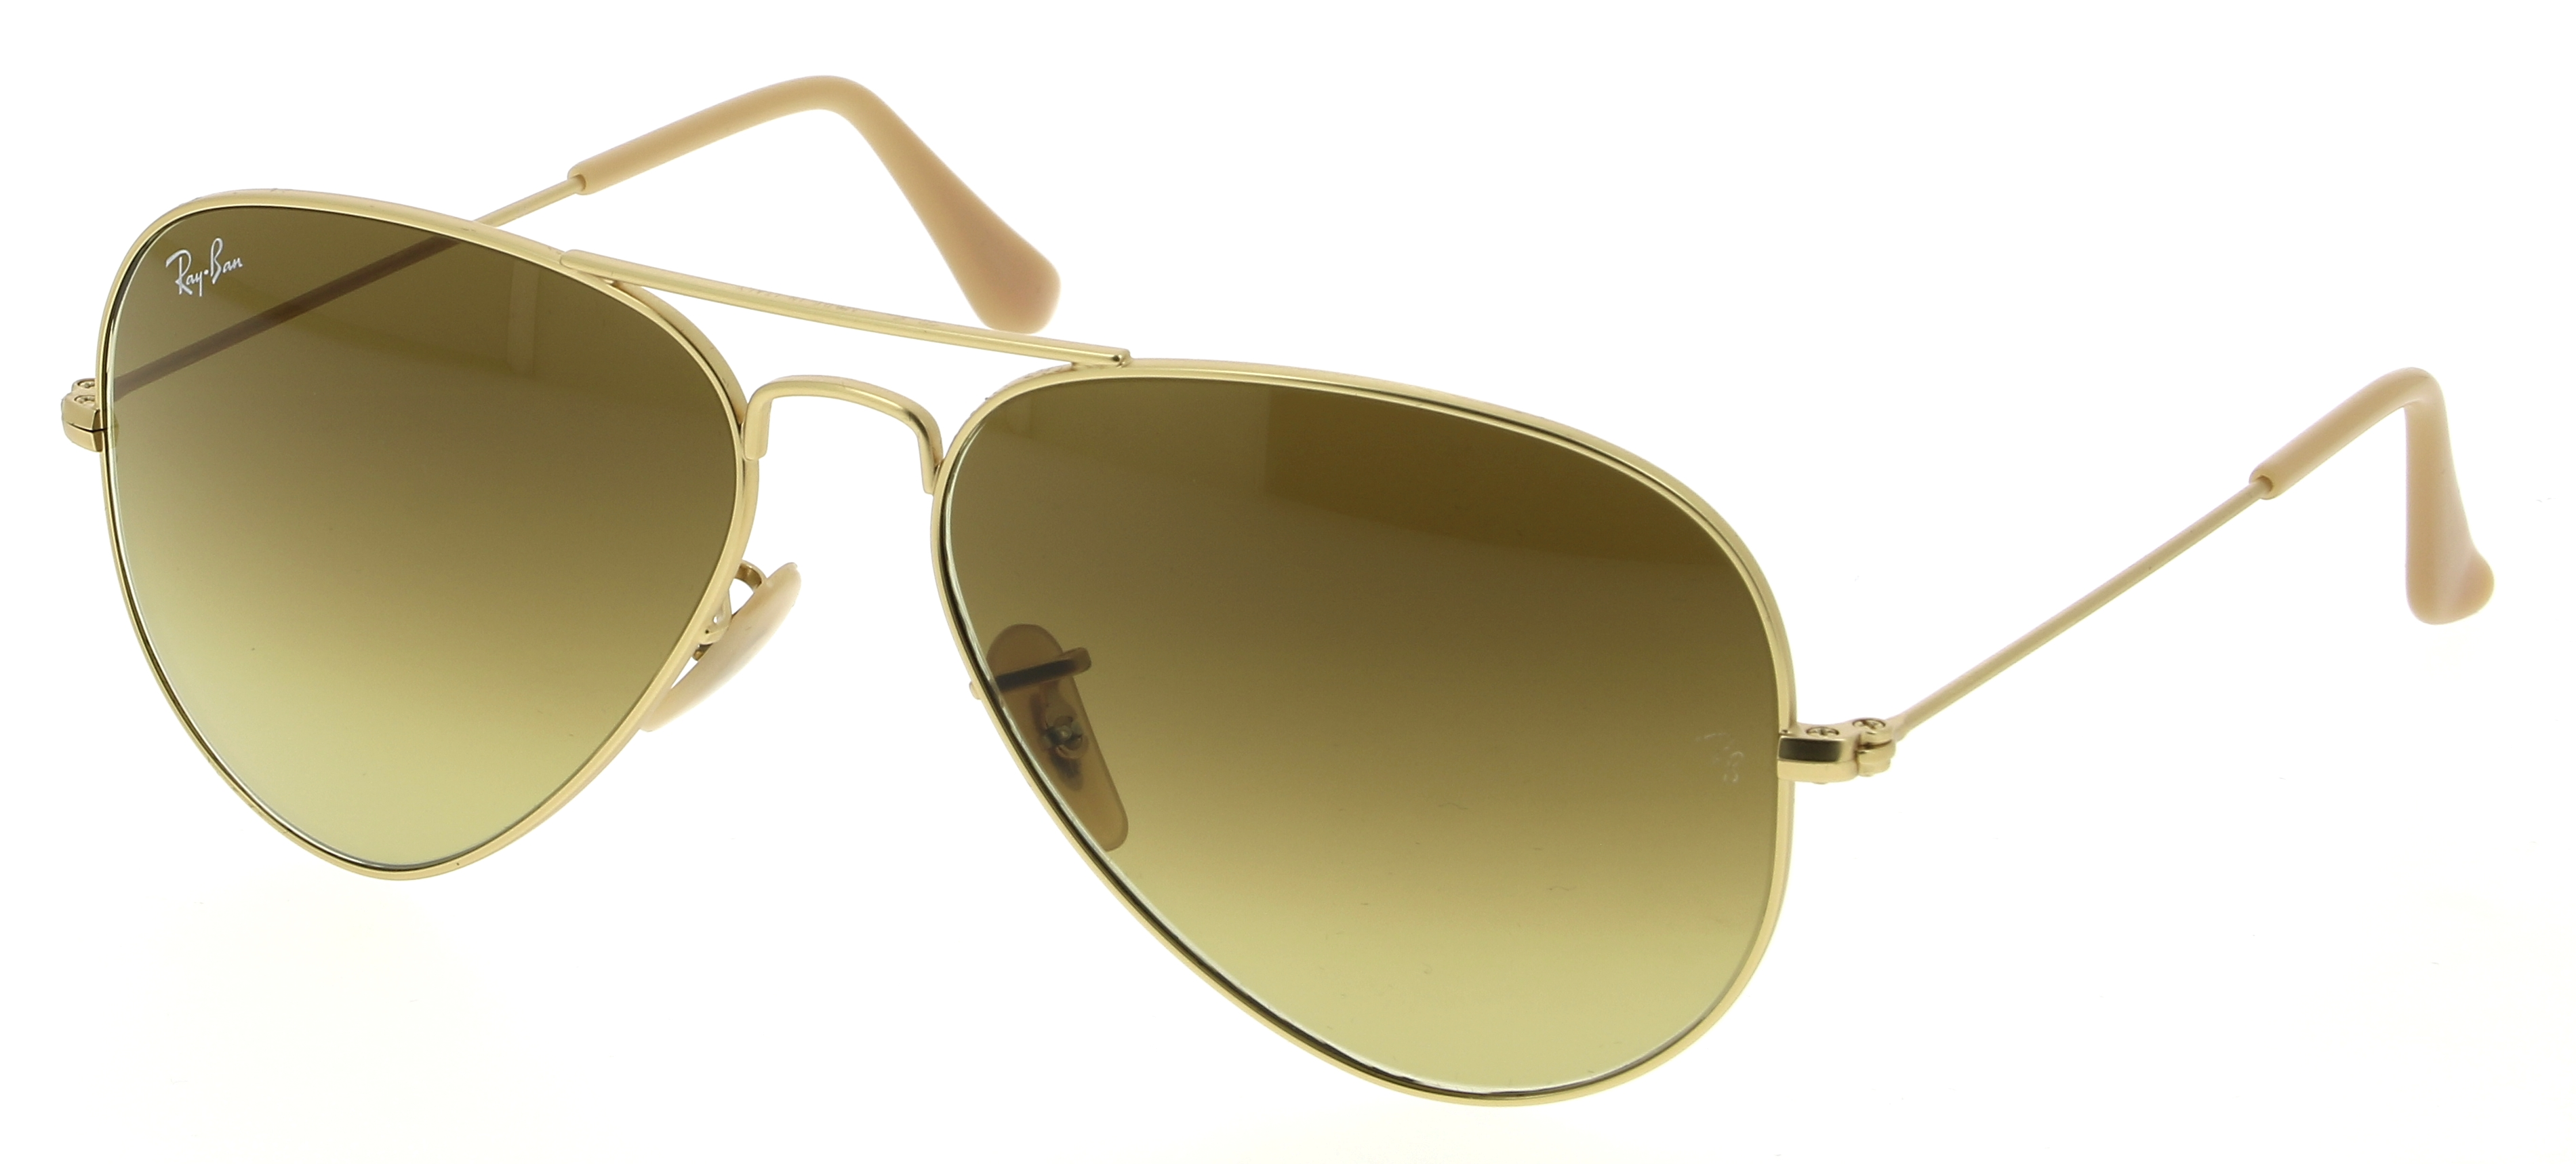 Ray Ban Femme Optical Center « Heritage Malta b42dbe1226b3